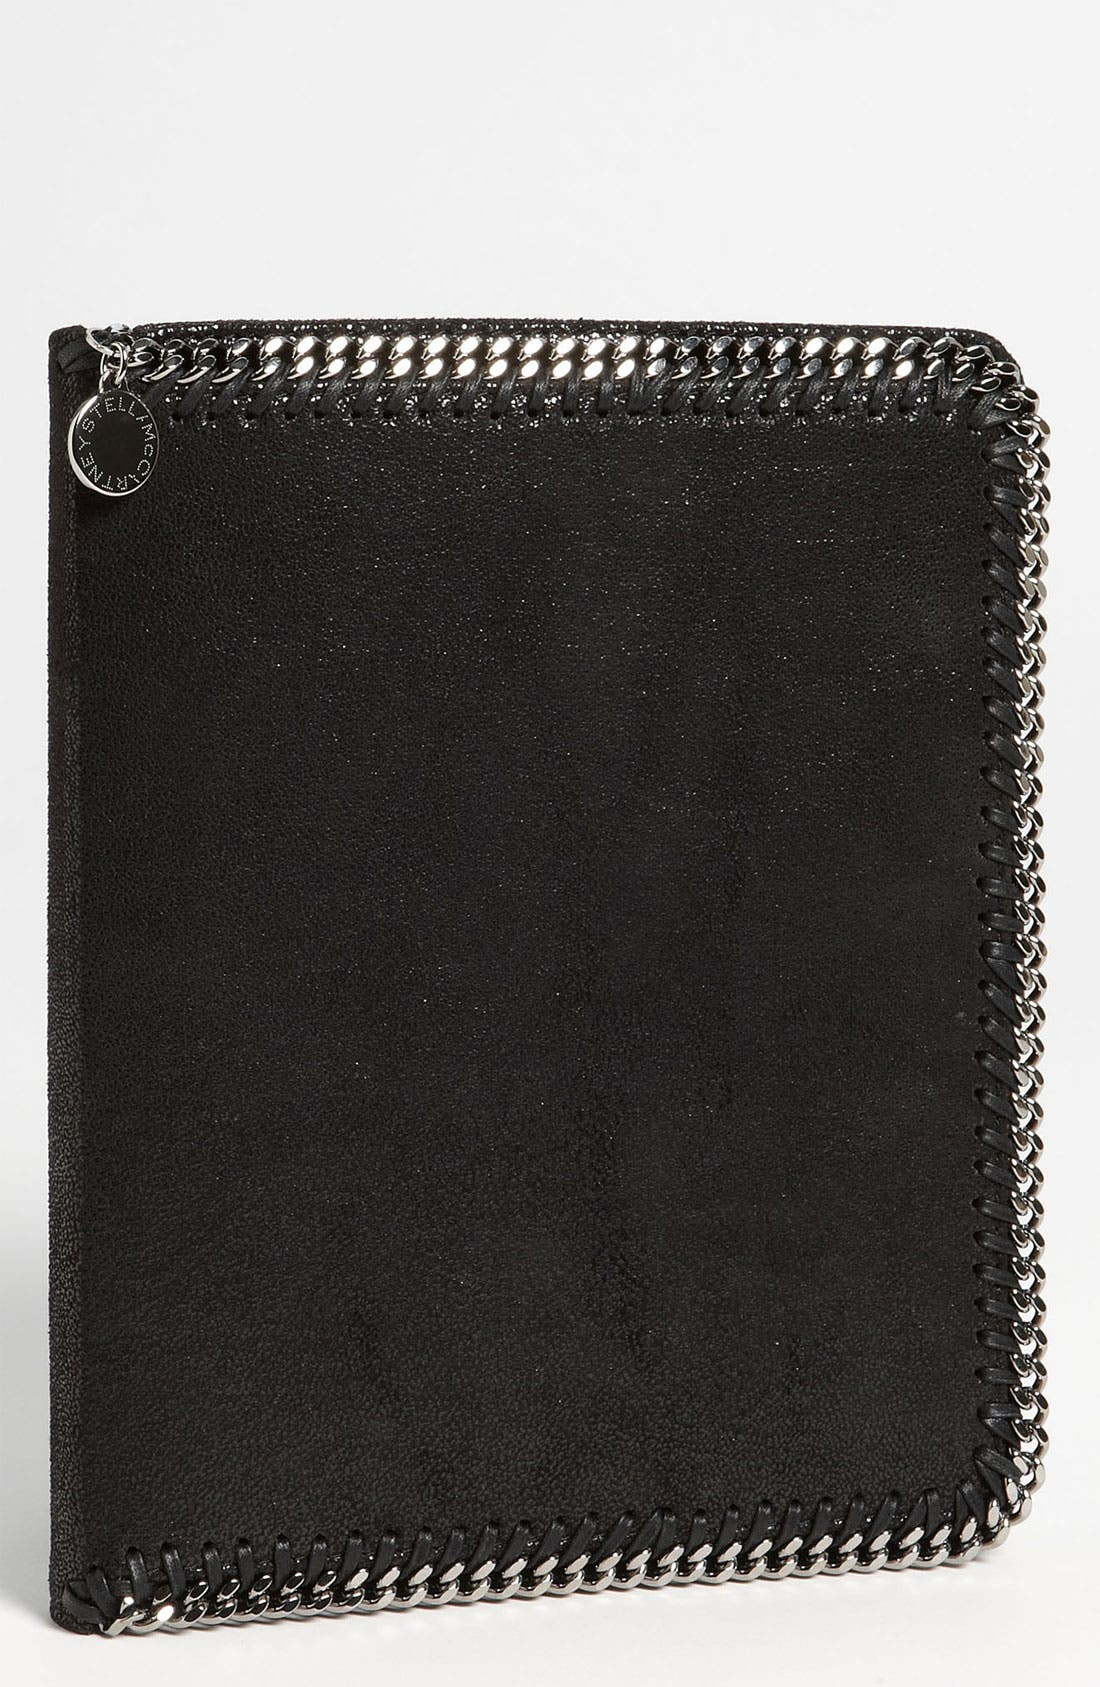 Alternate Image 1 Selected - Stella McCartney 'Falabella' iPad Case